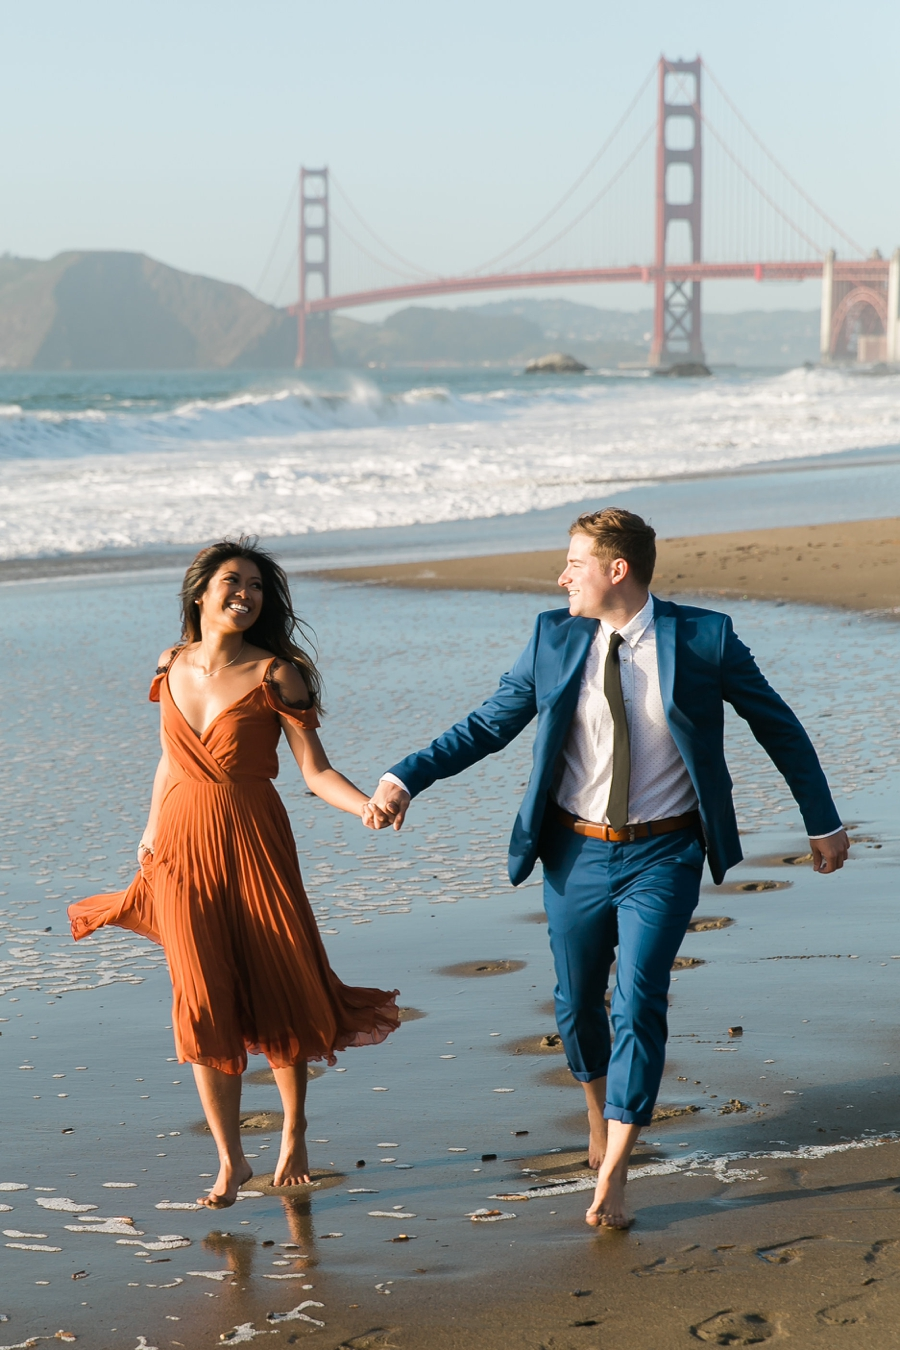 San-Francisco-Engagement-Photographer-Baker-Beach-engagement-photos_0215.jpg